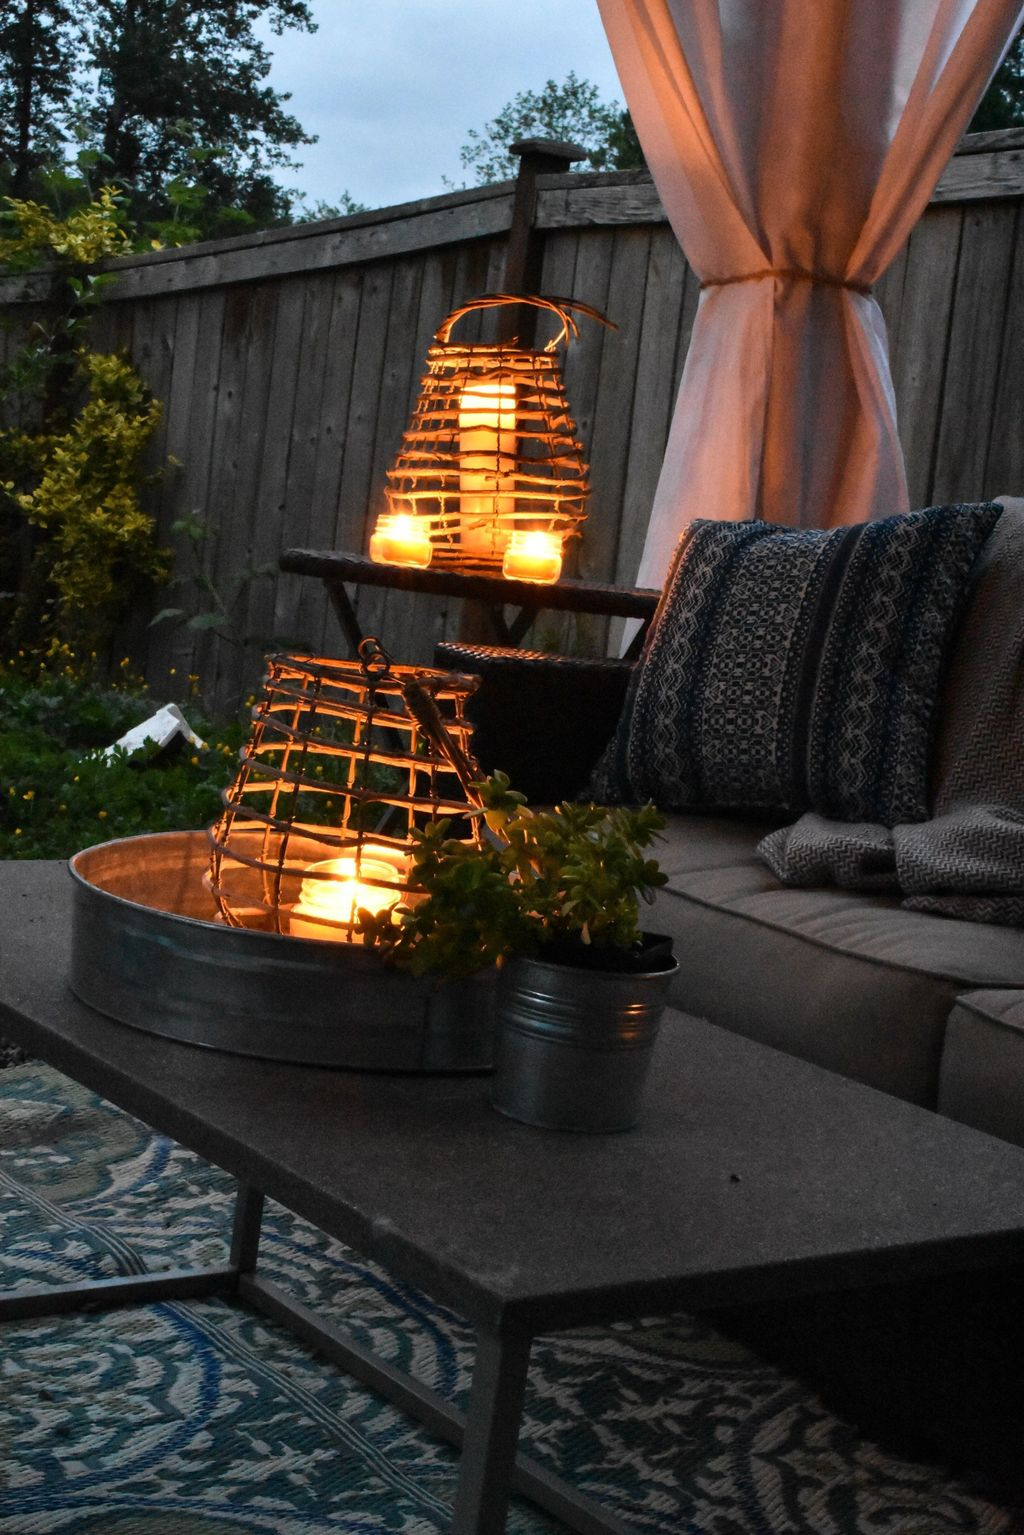 Inspiring Garden Lamps Ideas For Outdoors Decor 27